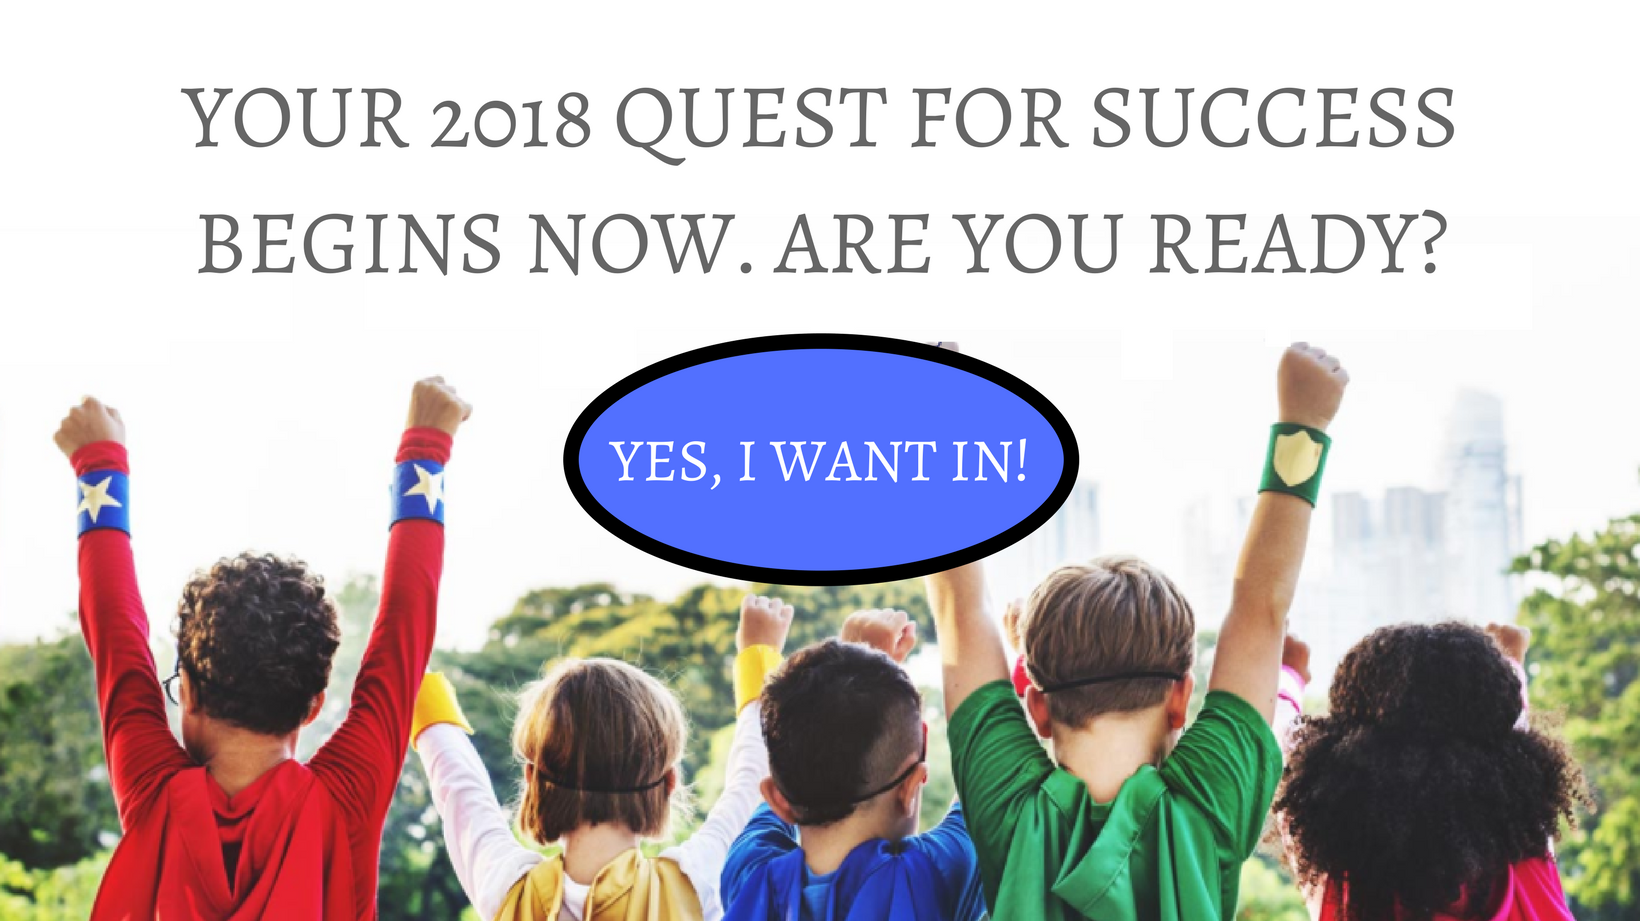 Achieve Your Goals. Join our FREE 2018 Goal Setting For Business Program